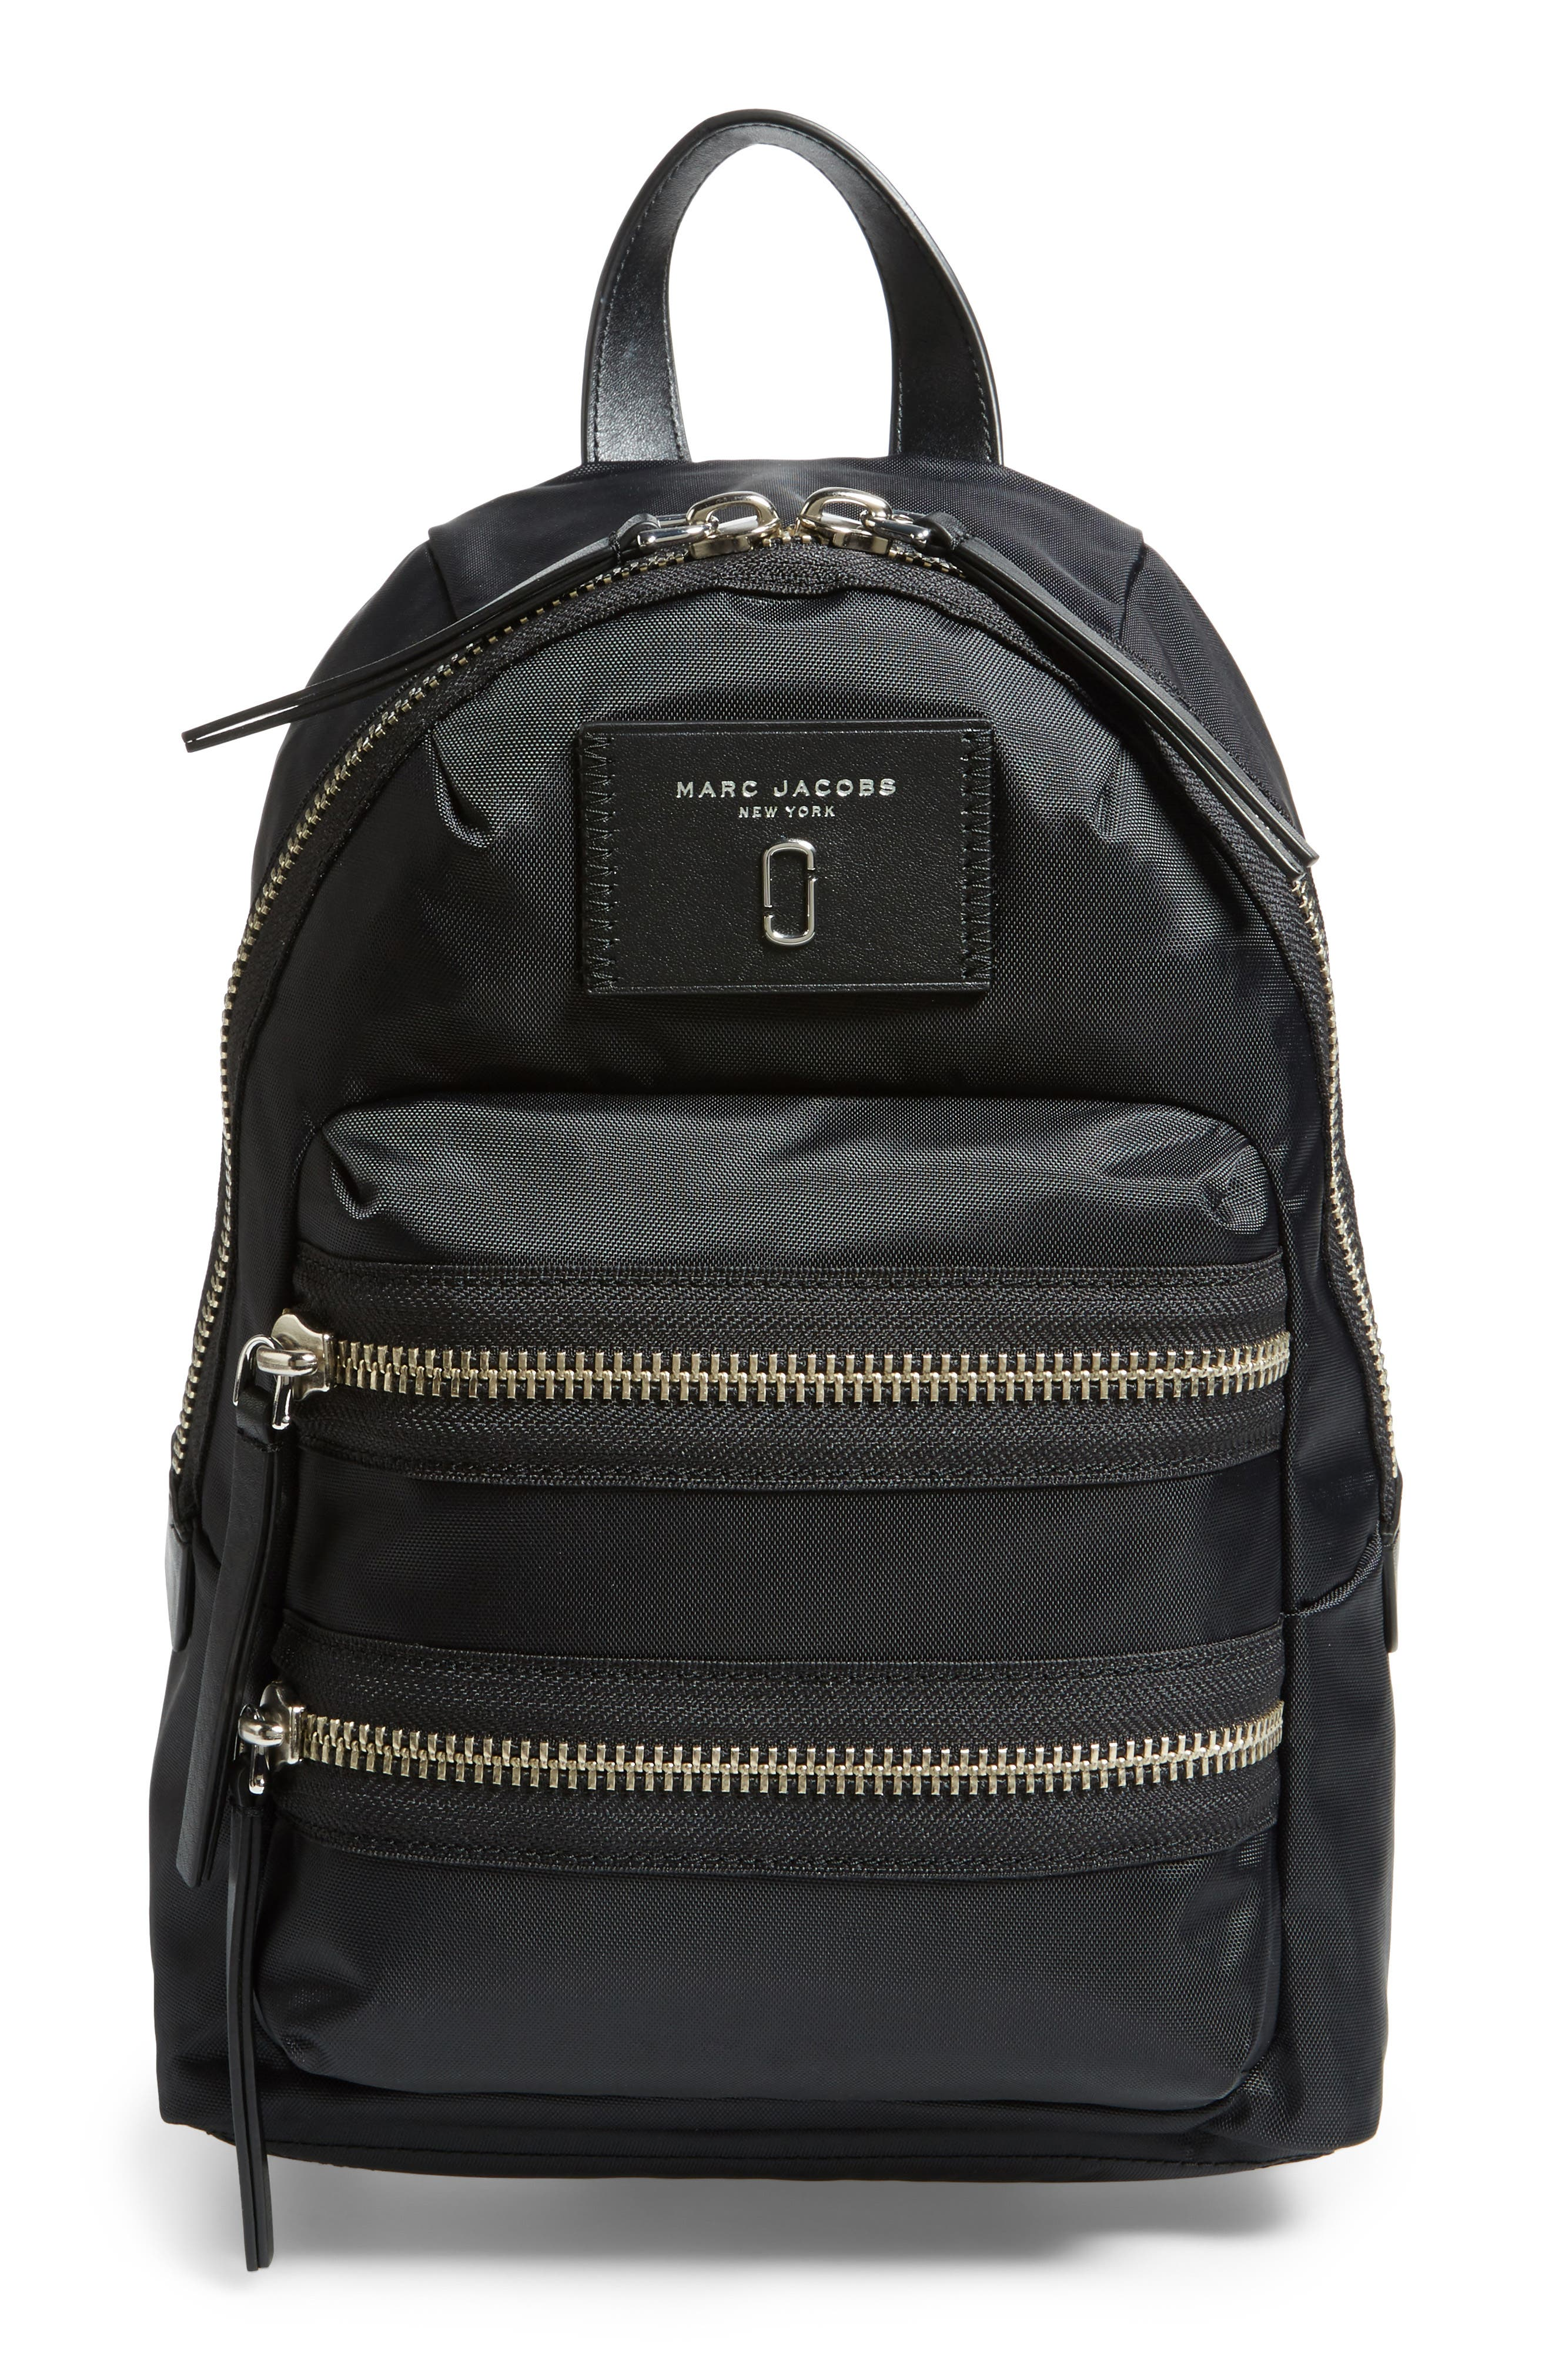 MARC JACOBS Mini Biker Nylon Backpack